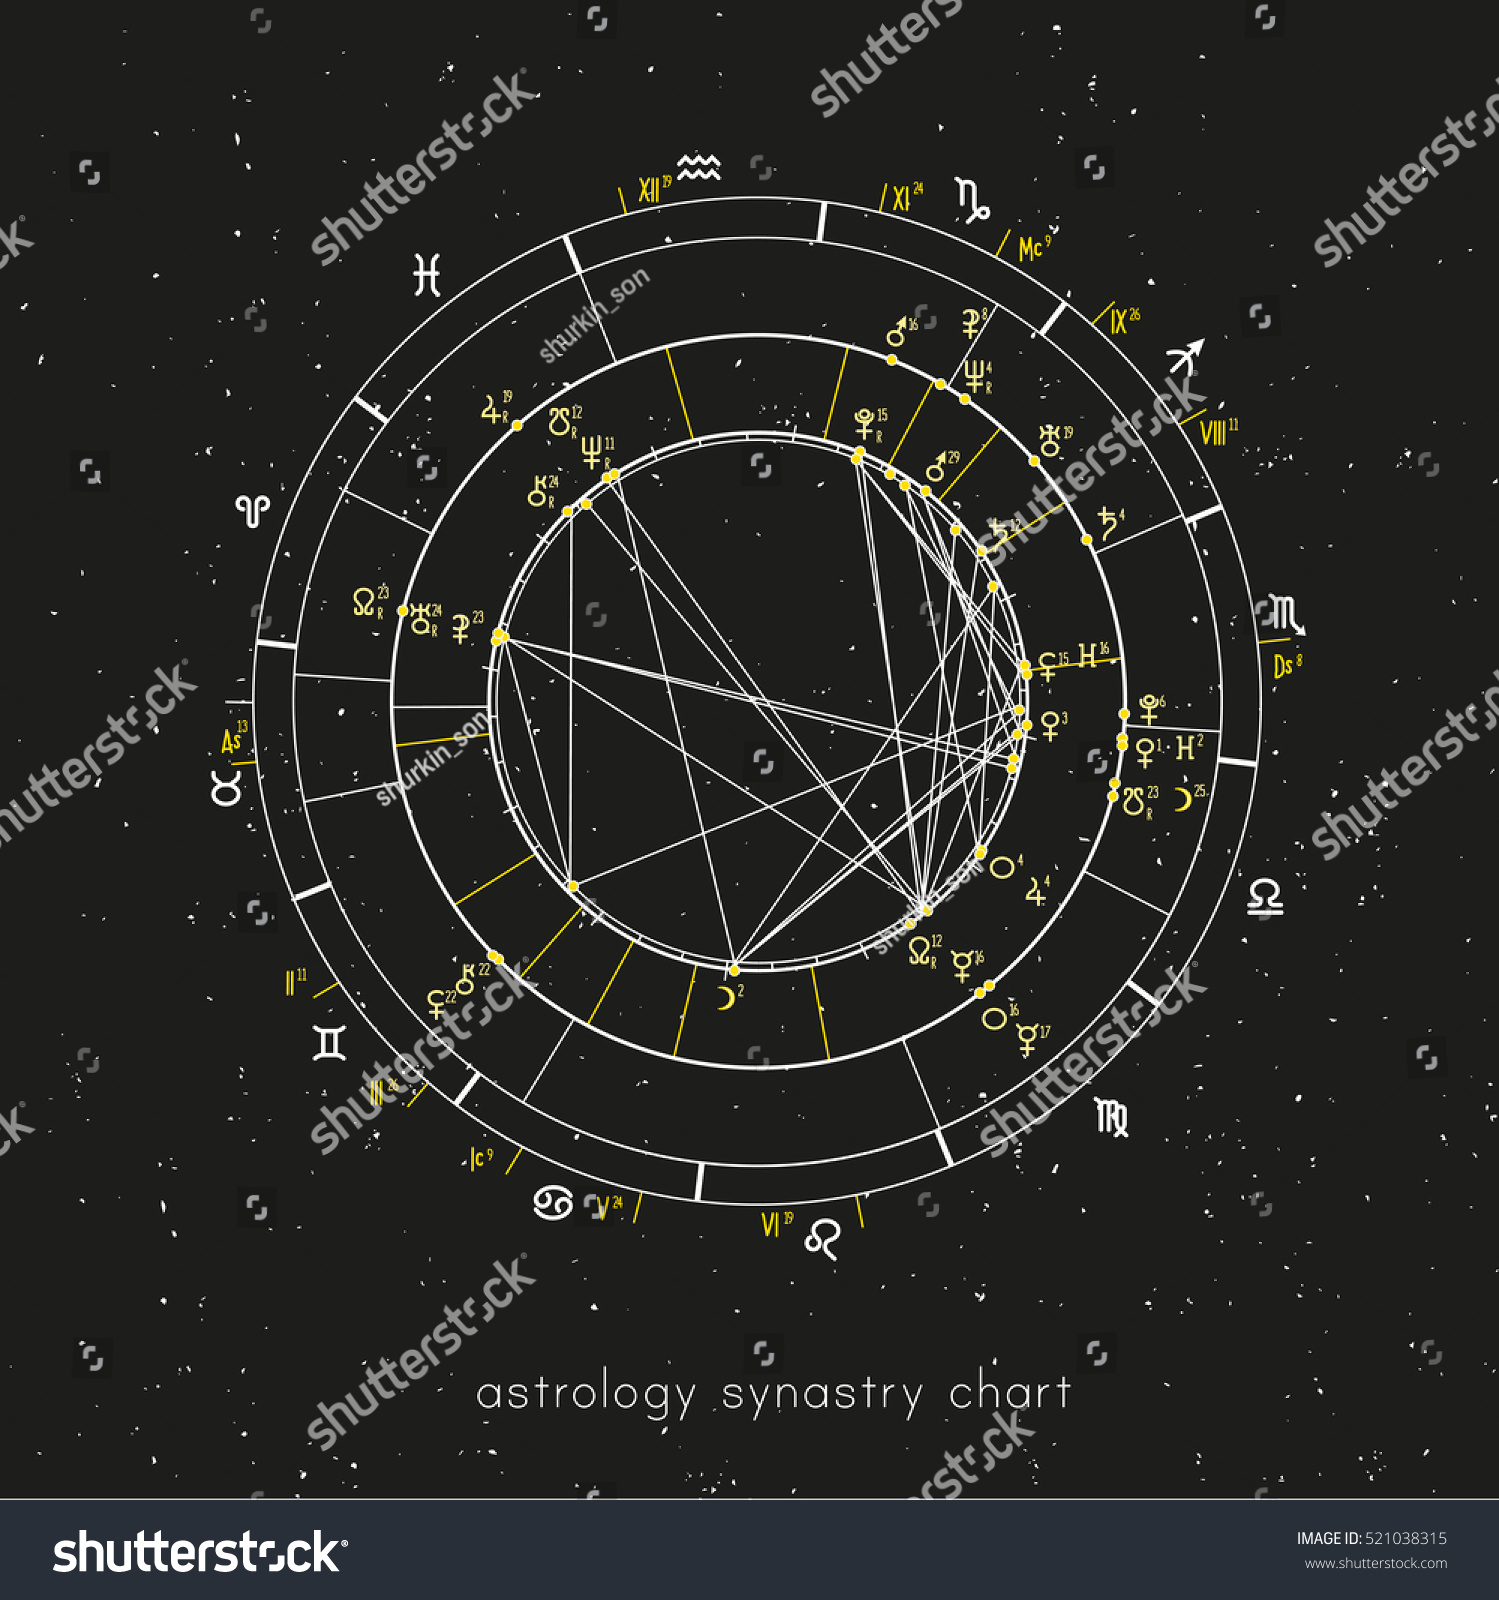 Example Astrological Synastry Chart Planets Houses Stock Vector